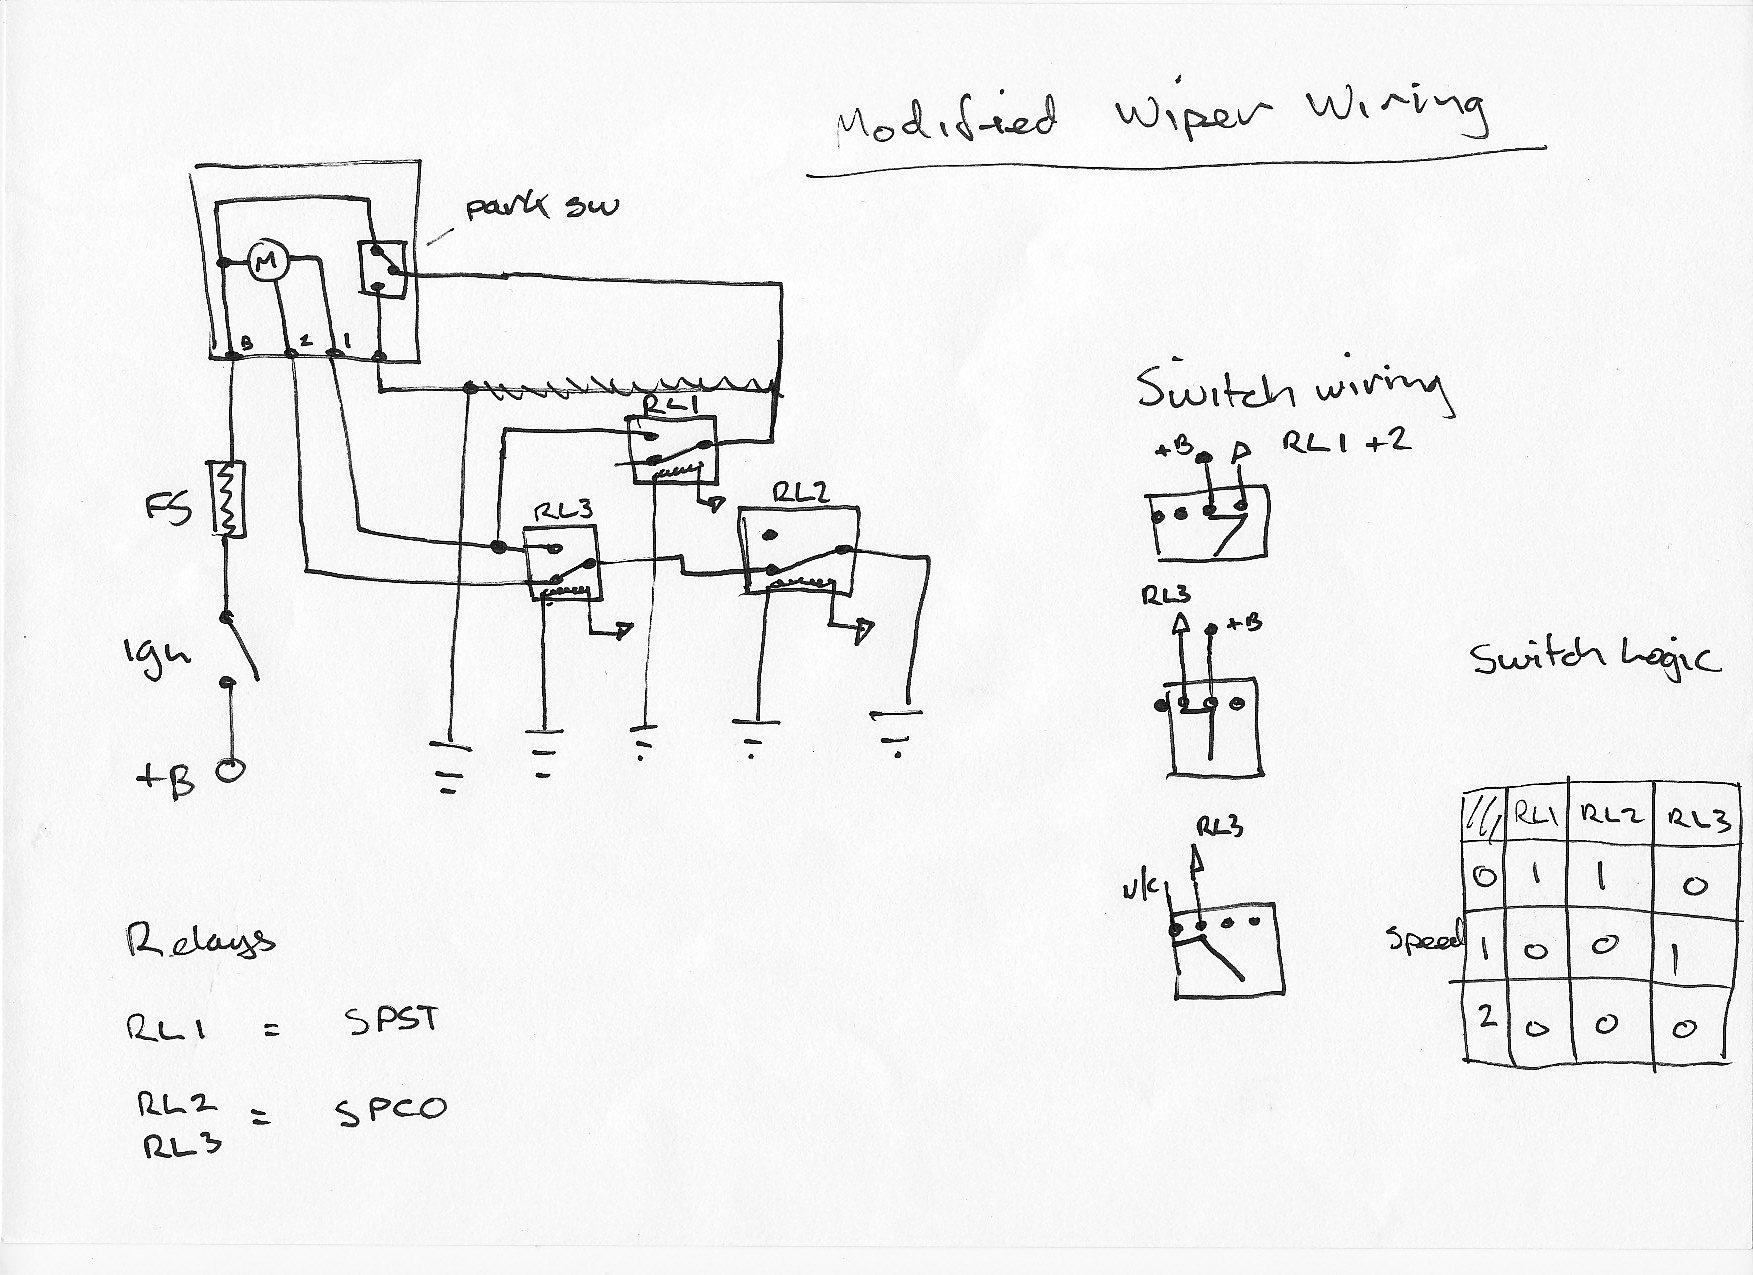 Granite Mack Wiring Diagram Wipers Schematic Diagrams 88 Windshield Schematics Wiper Motor